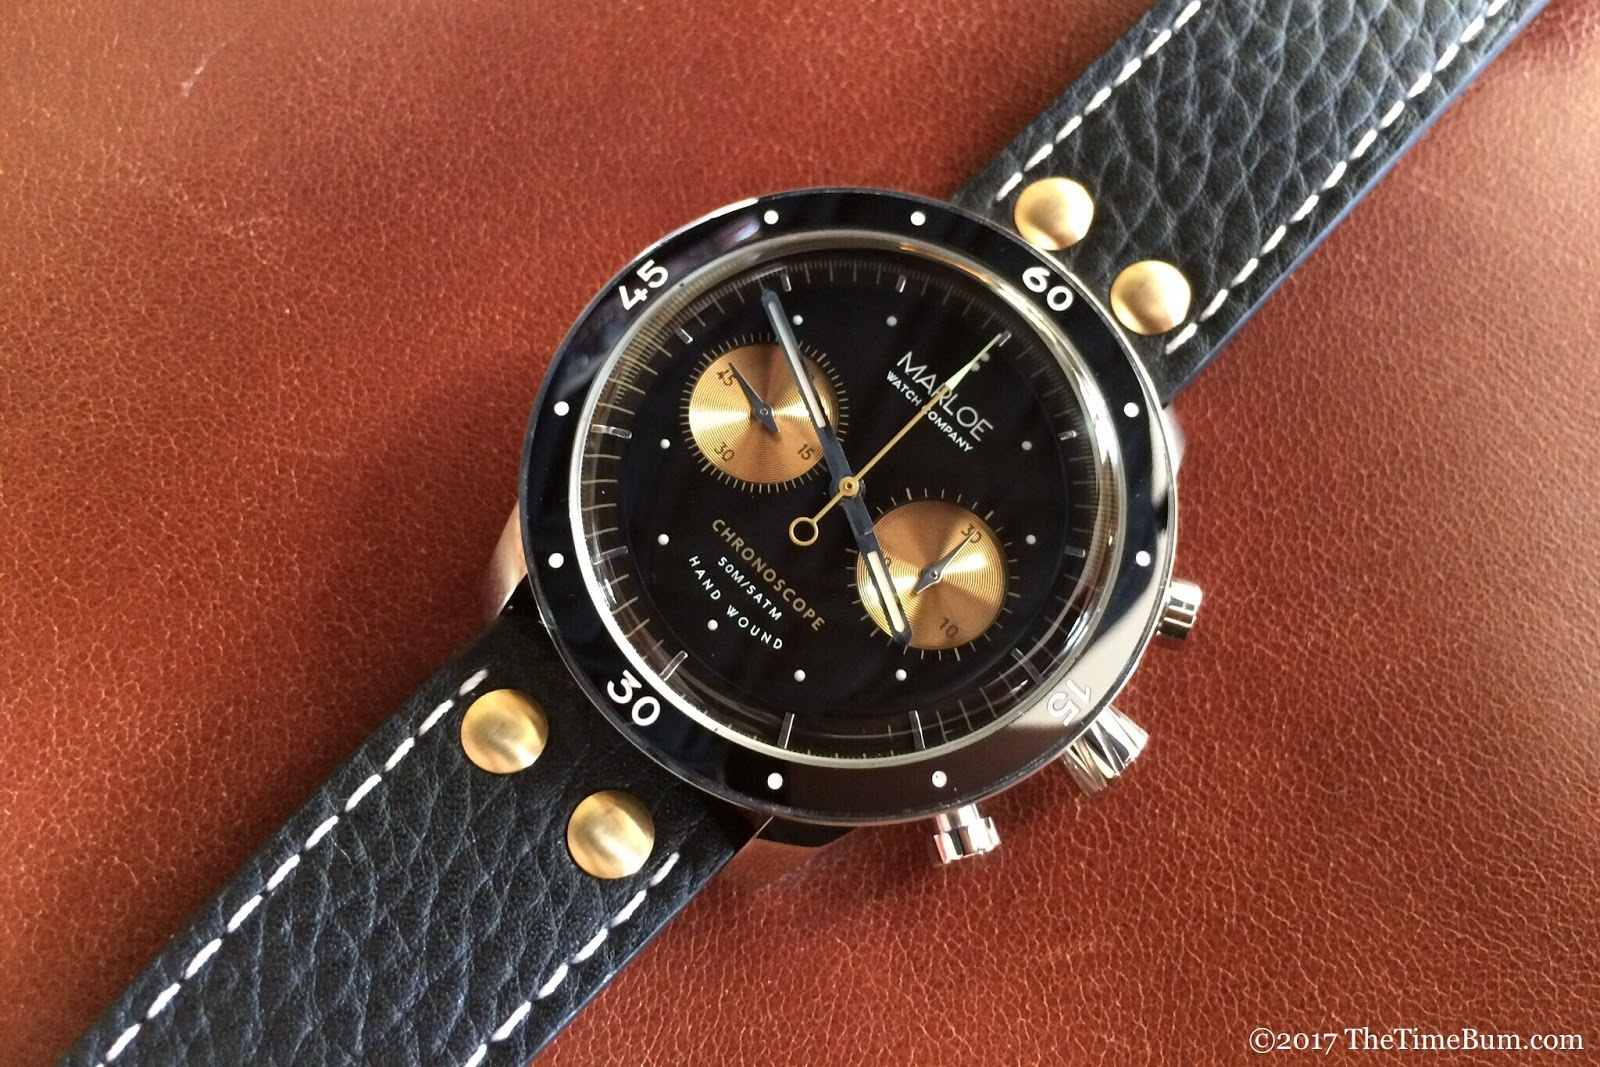 Marloe Lomond Chronoscope Vintage Coffee